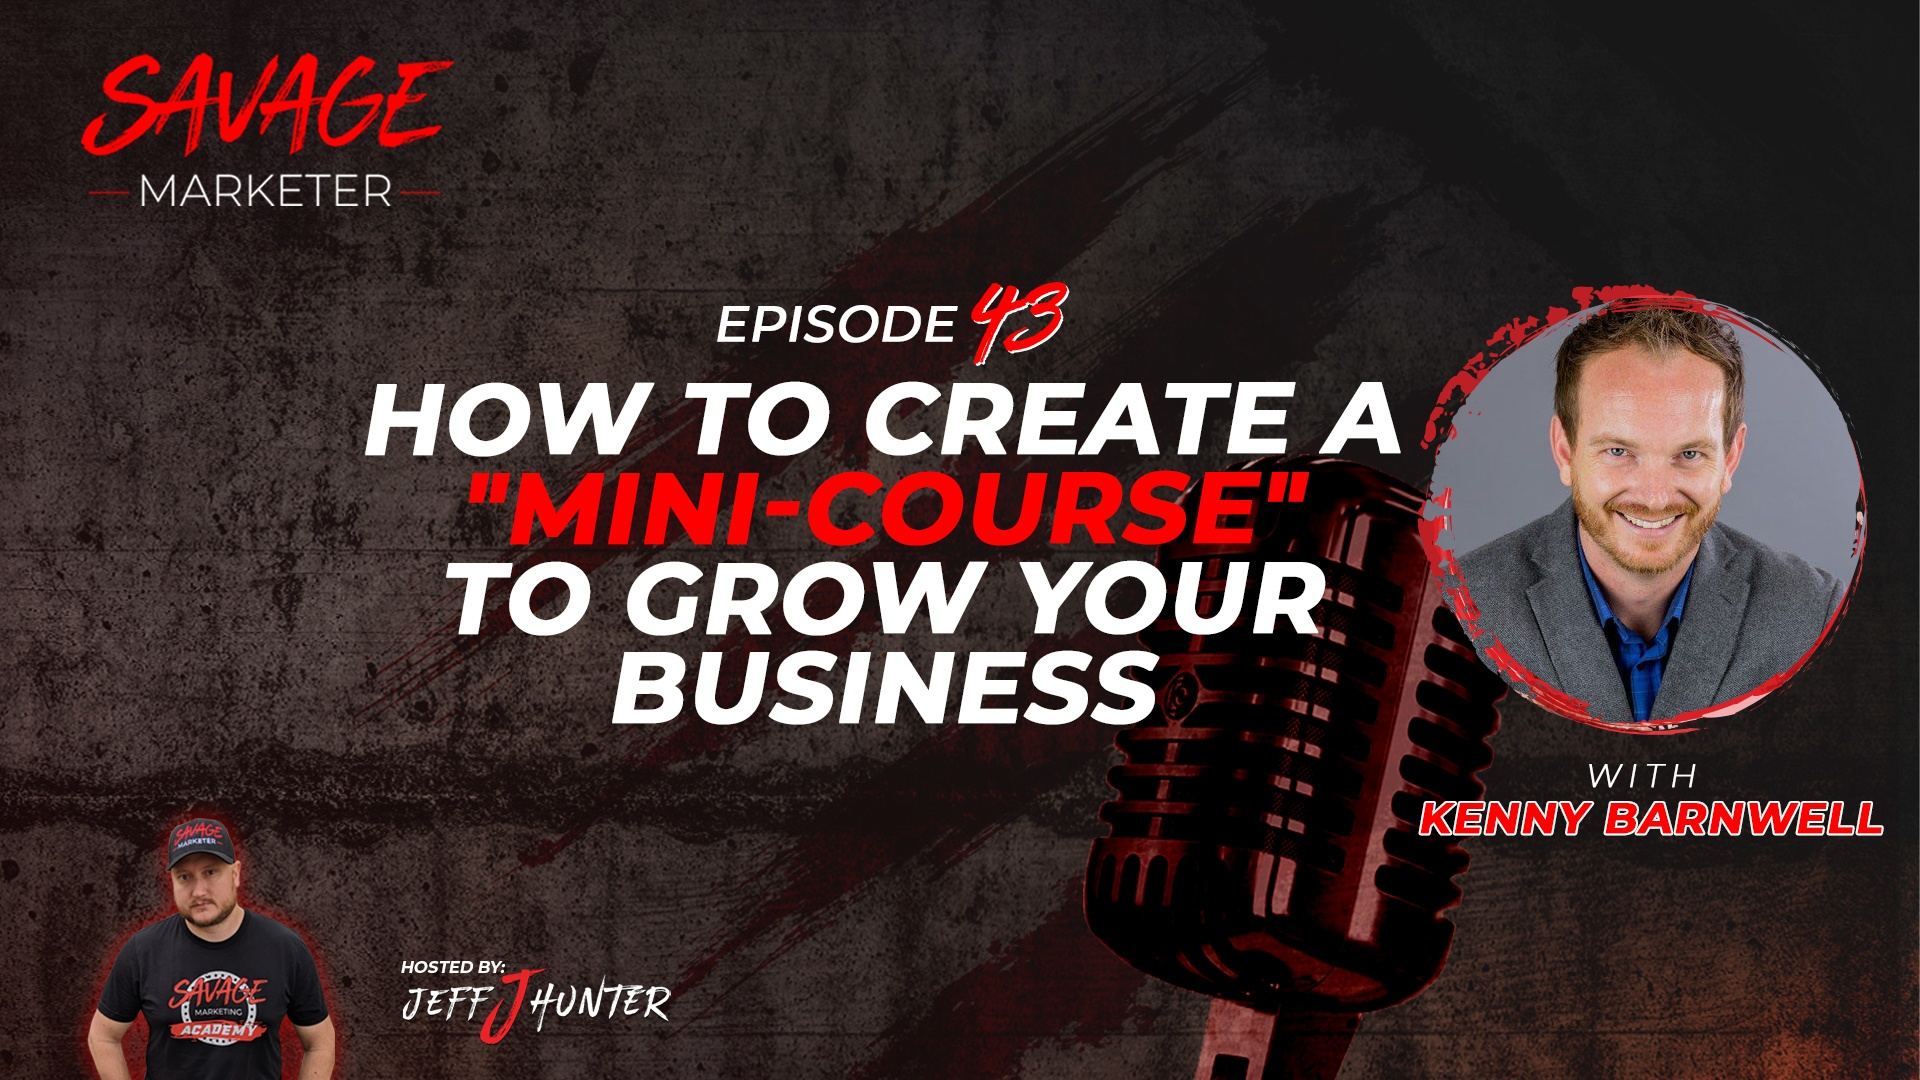 """How To Create A """"Mini-Course"""" To Grow Your Business with Kenny Barnwell"""